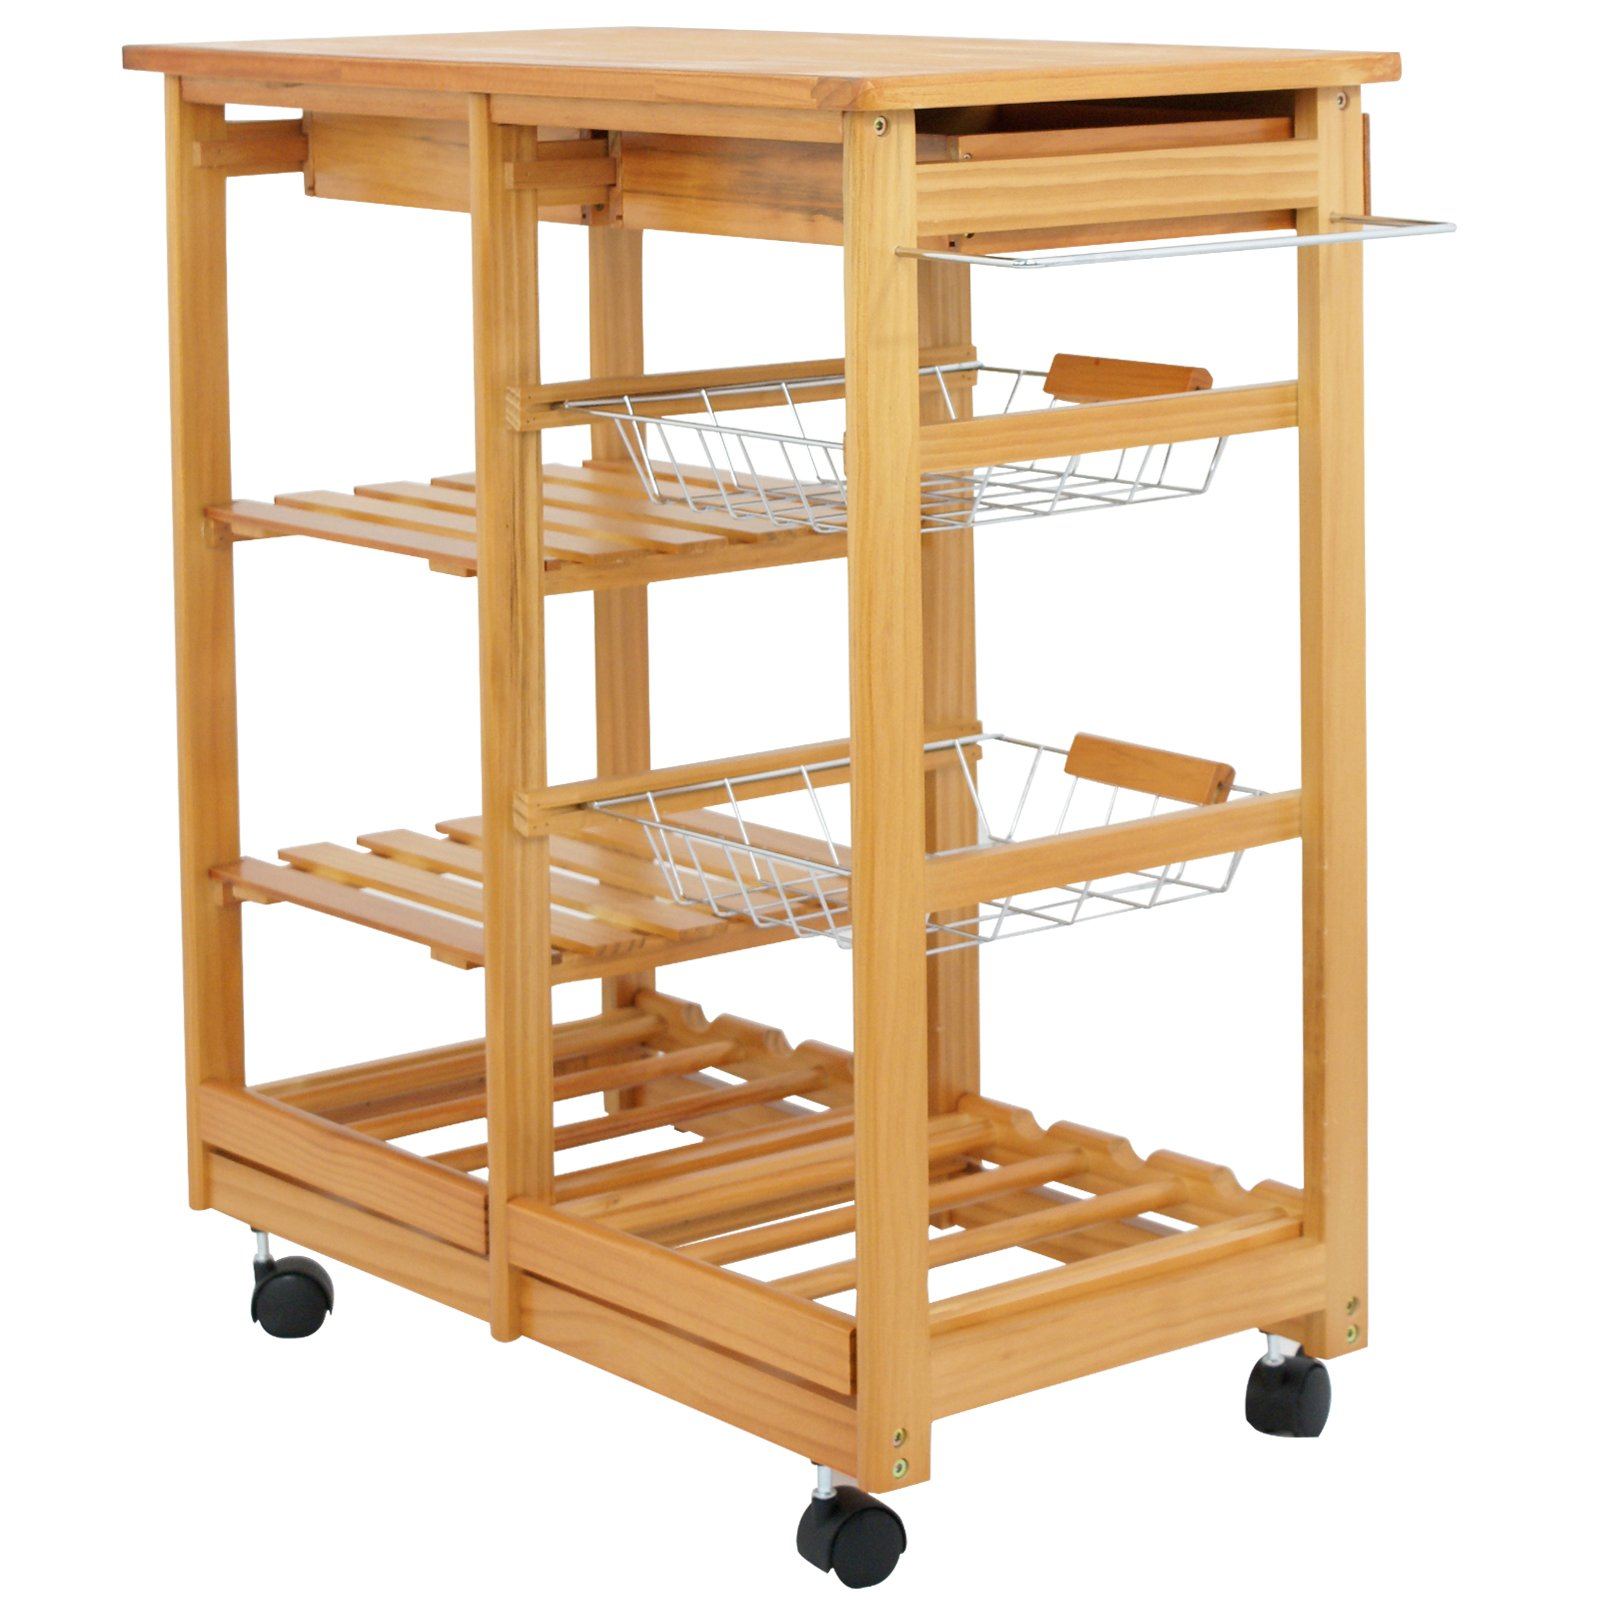 SUPER DEAL Multi-Purpose Wood Rolling Kitchen Island Trolley w/Drawer Shelves Basket by SUPER DEAL (Image #6)